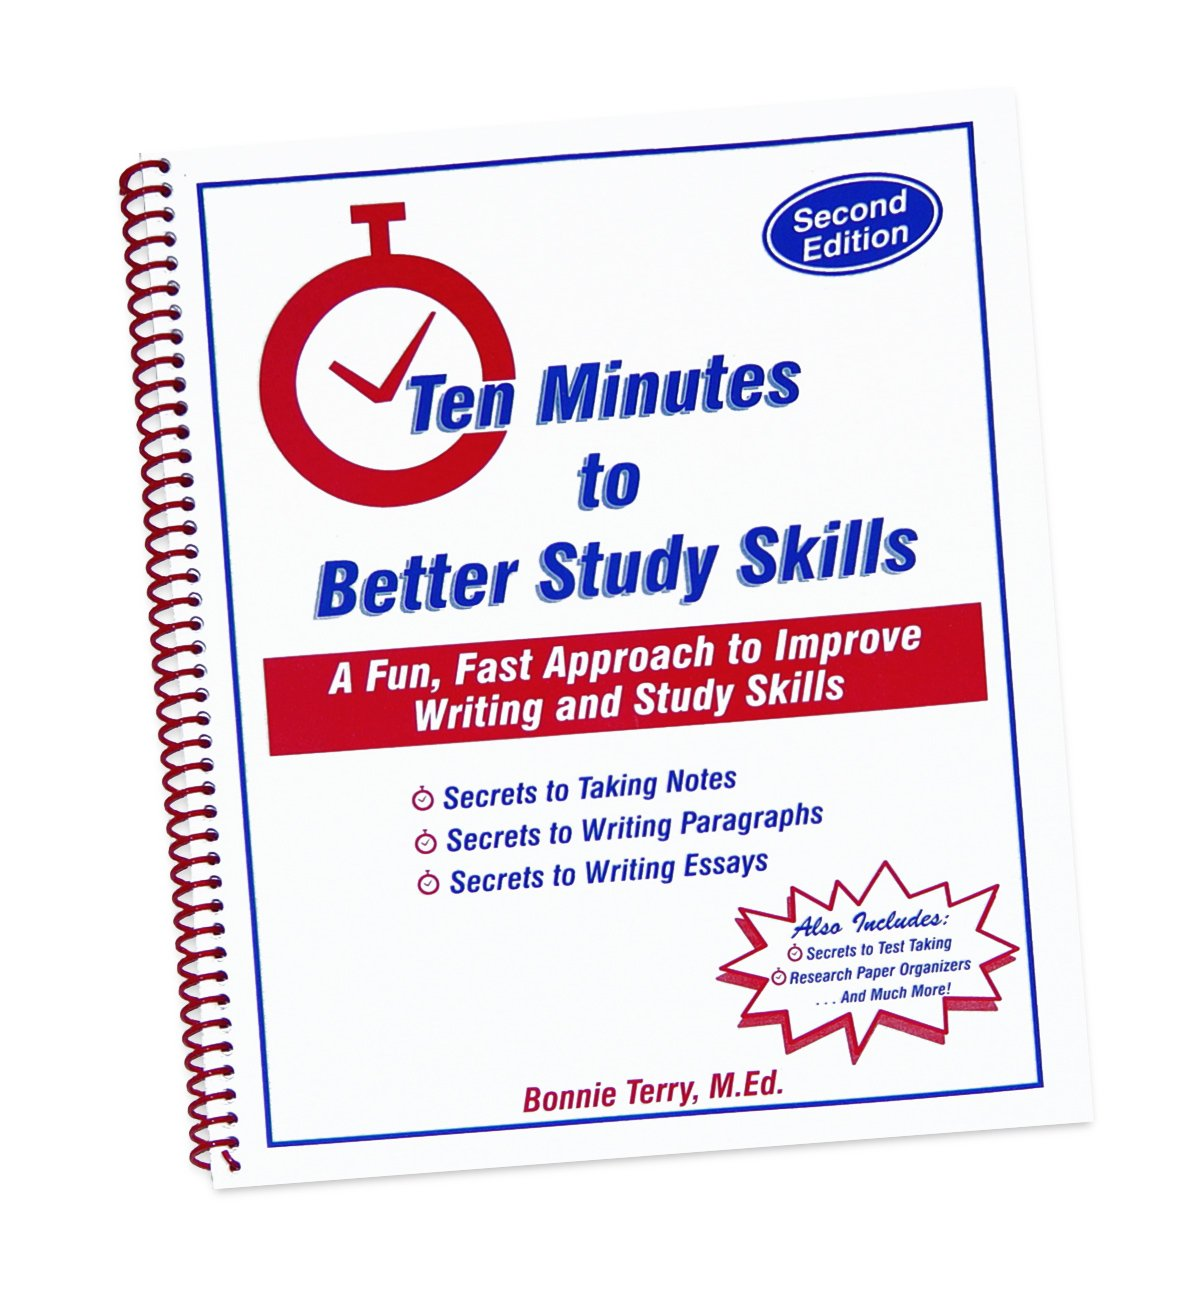 ten minutes to better study skills a fast fun approach to improve ten minutes to better study skills a fast fun approach to improve writing and study skills 3rd edition bonnie terry 0641708701976 com books